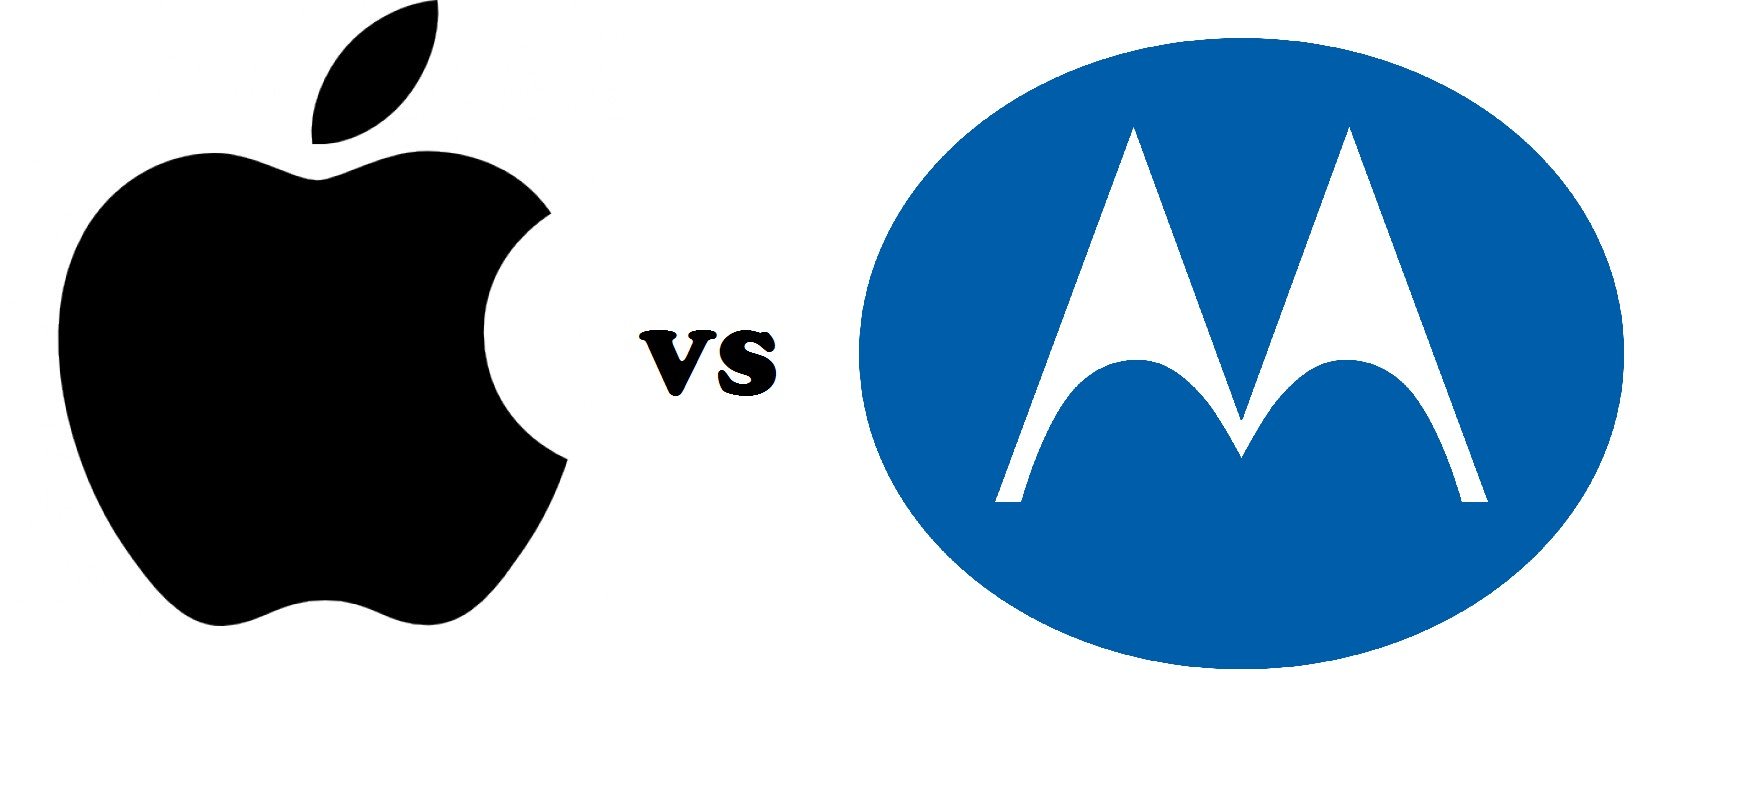 moto g5 plus vs iphone se